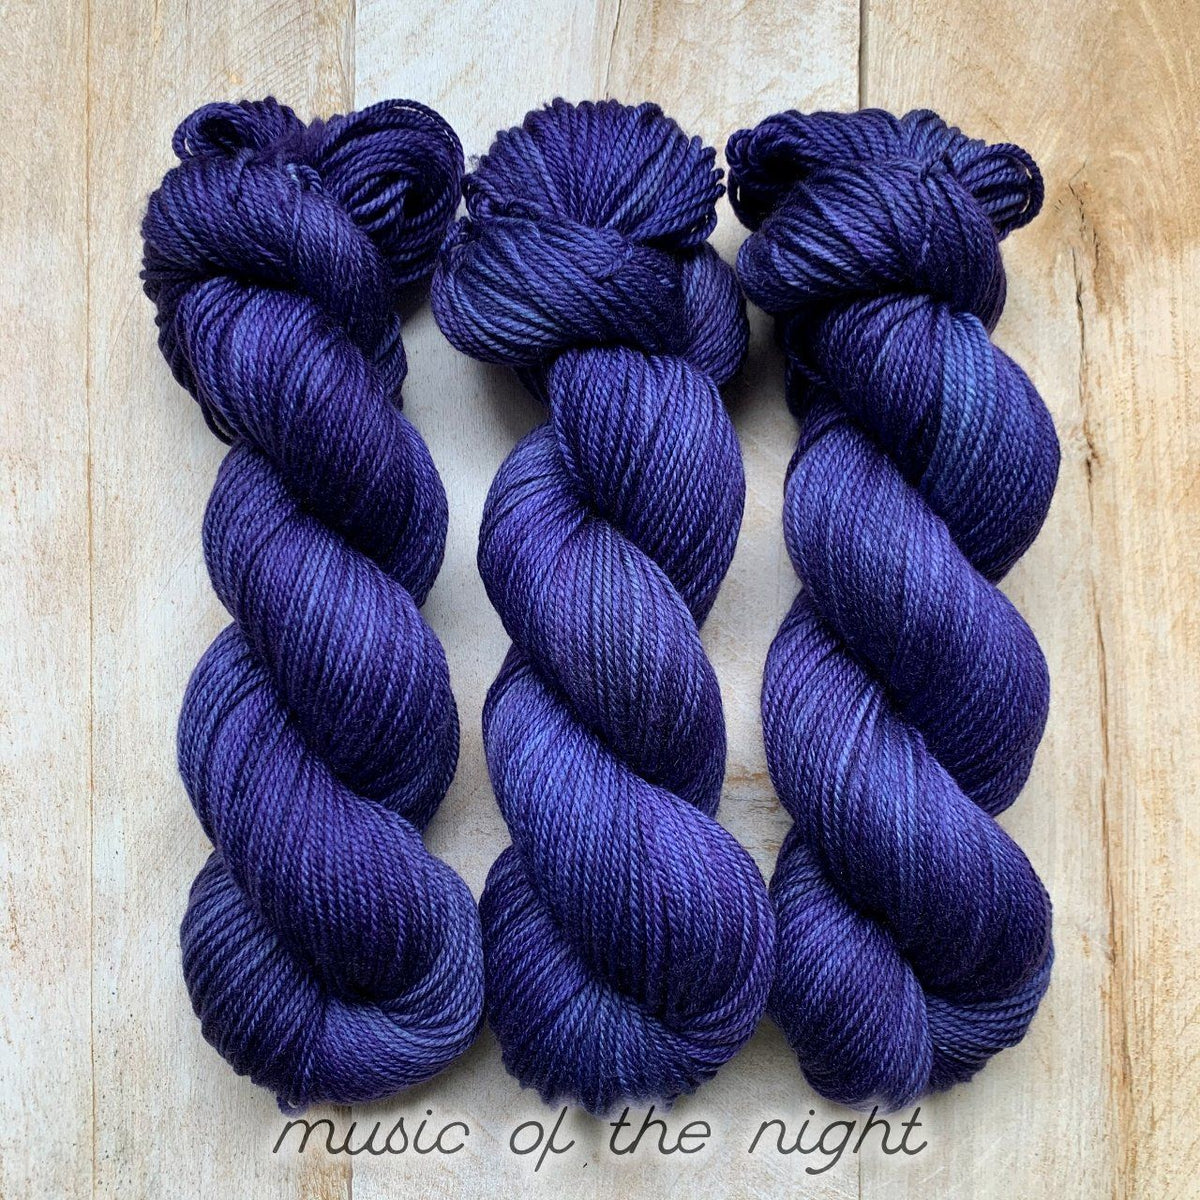 MUSIC OF THE NIGHT by Louise Robert Design | DK PURE hand-dyed semi-solid yarn